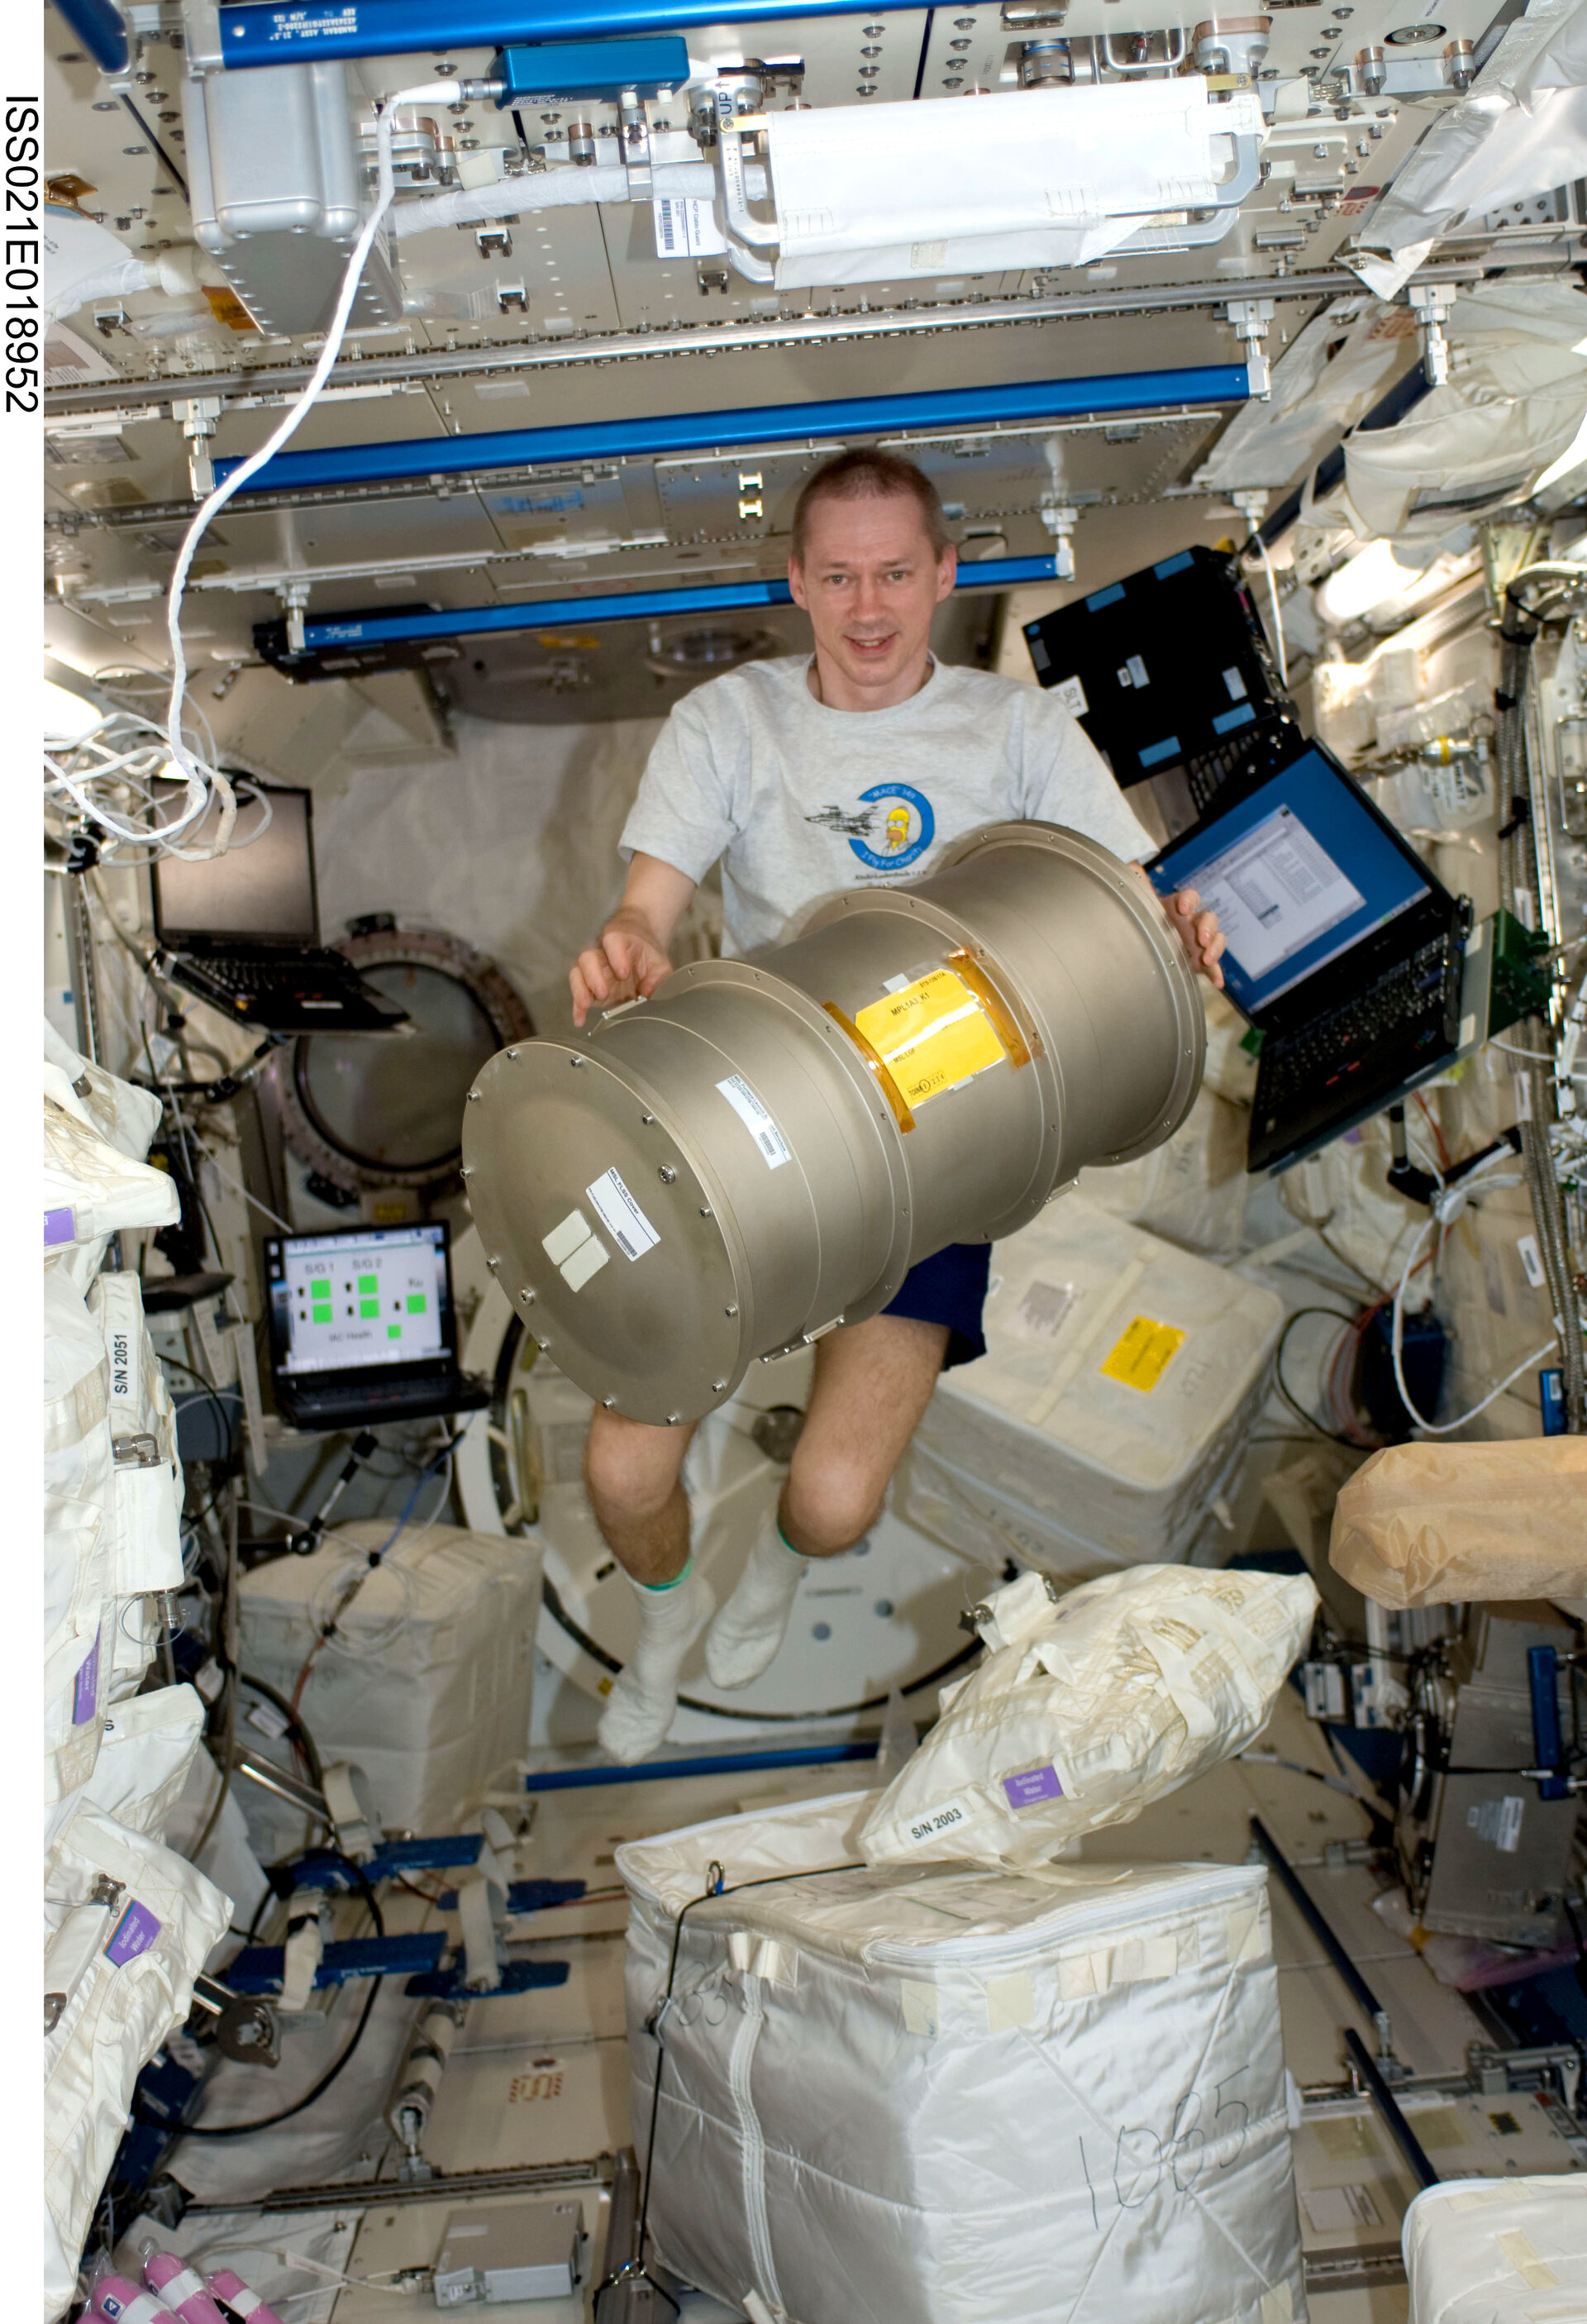 ESA astronaut Frank de Winne working with Materials Science Laboratory